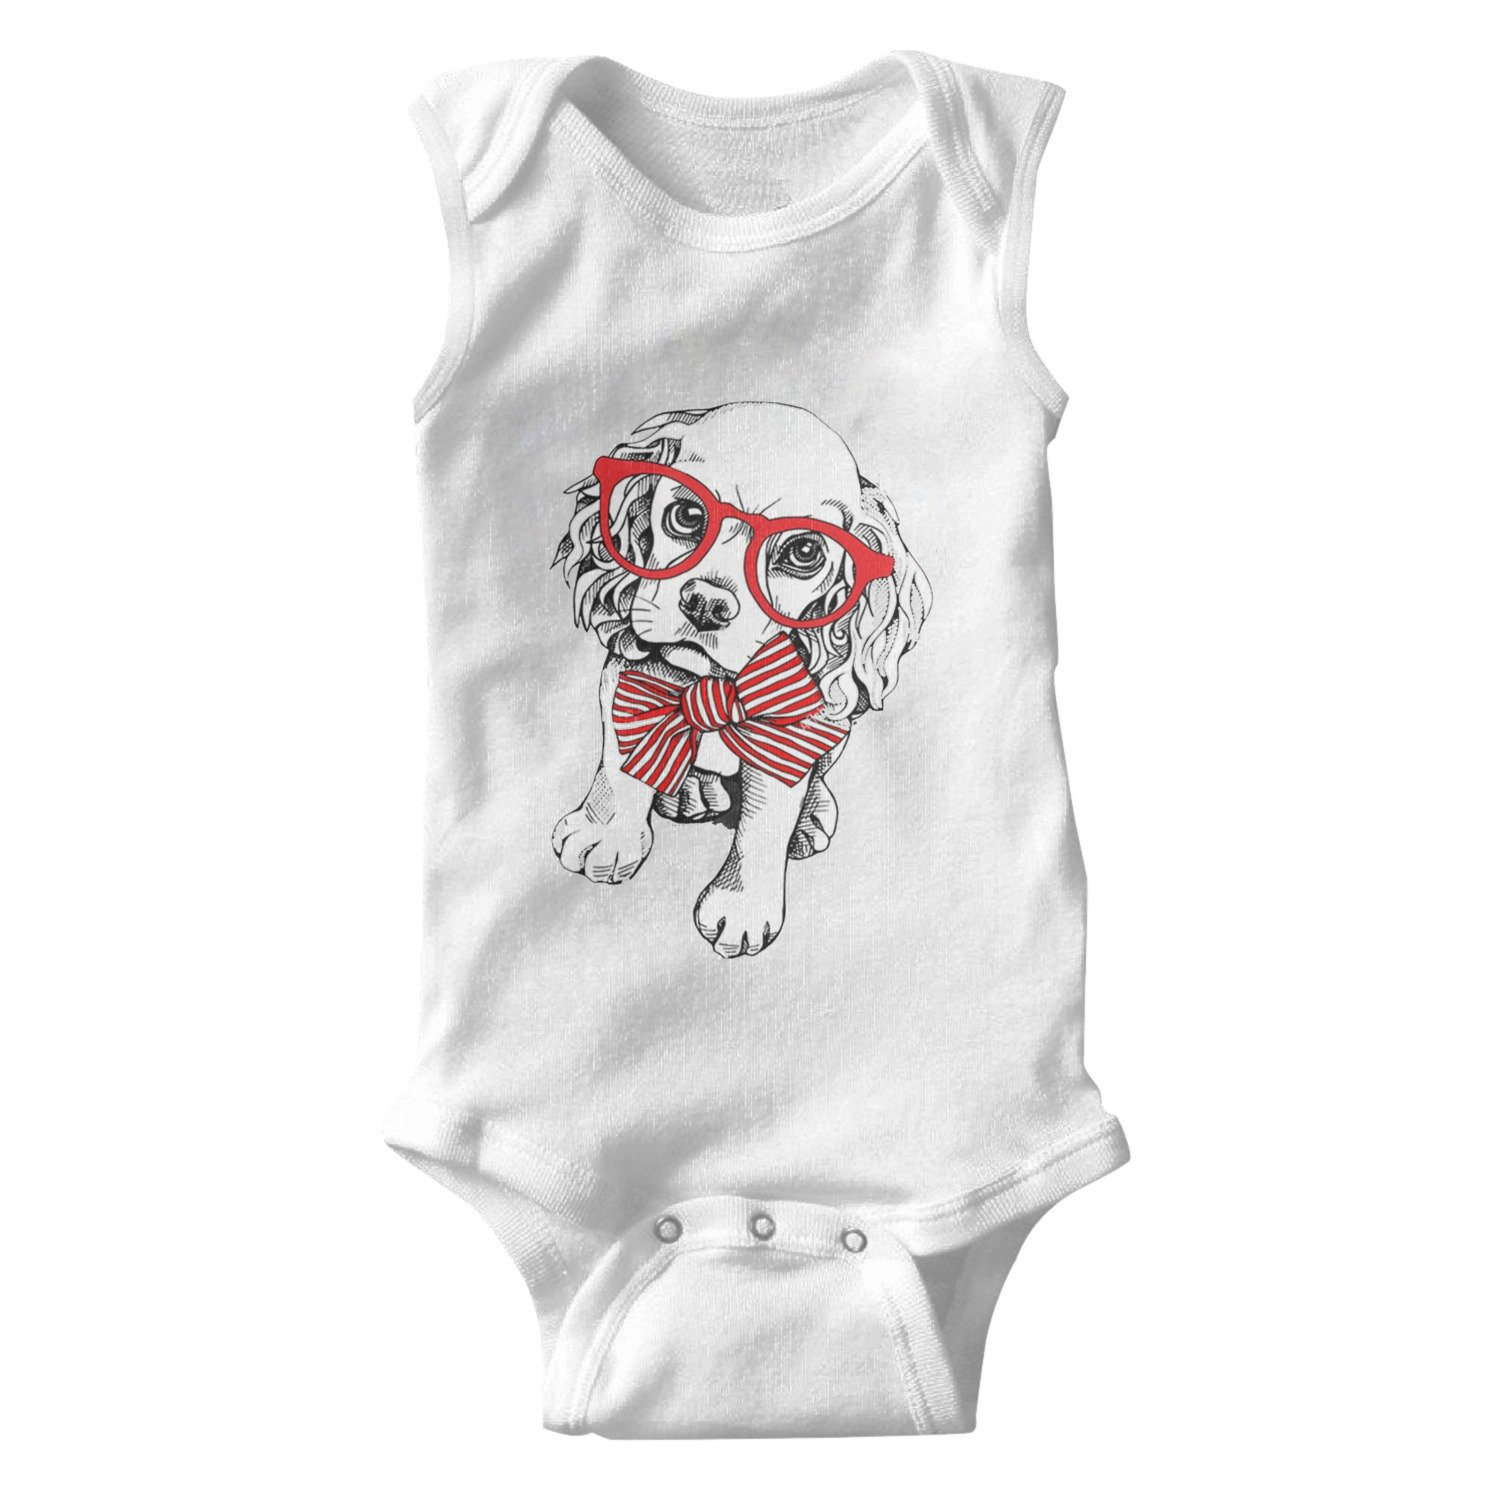 Puppy Cockers Paniel in A Red Striped Bow with Glasses Unisex Baby Cotton Sleeveless Toddler Clothes Baby Onesies White